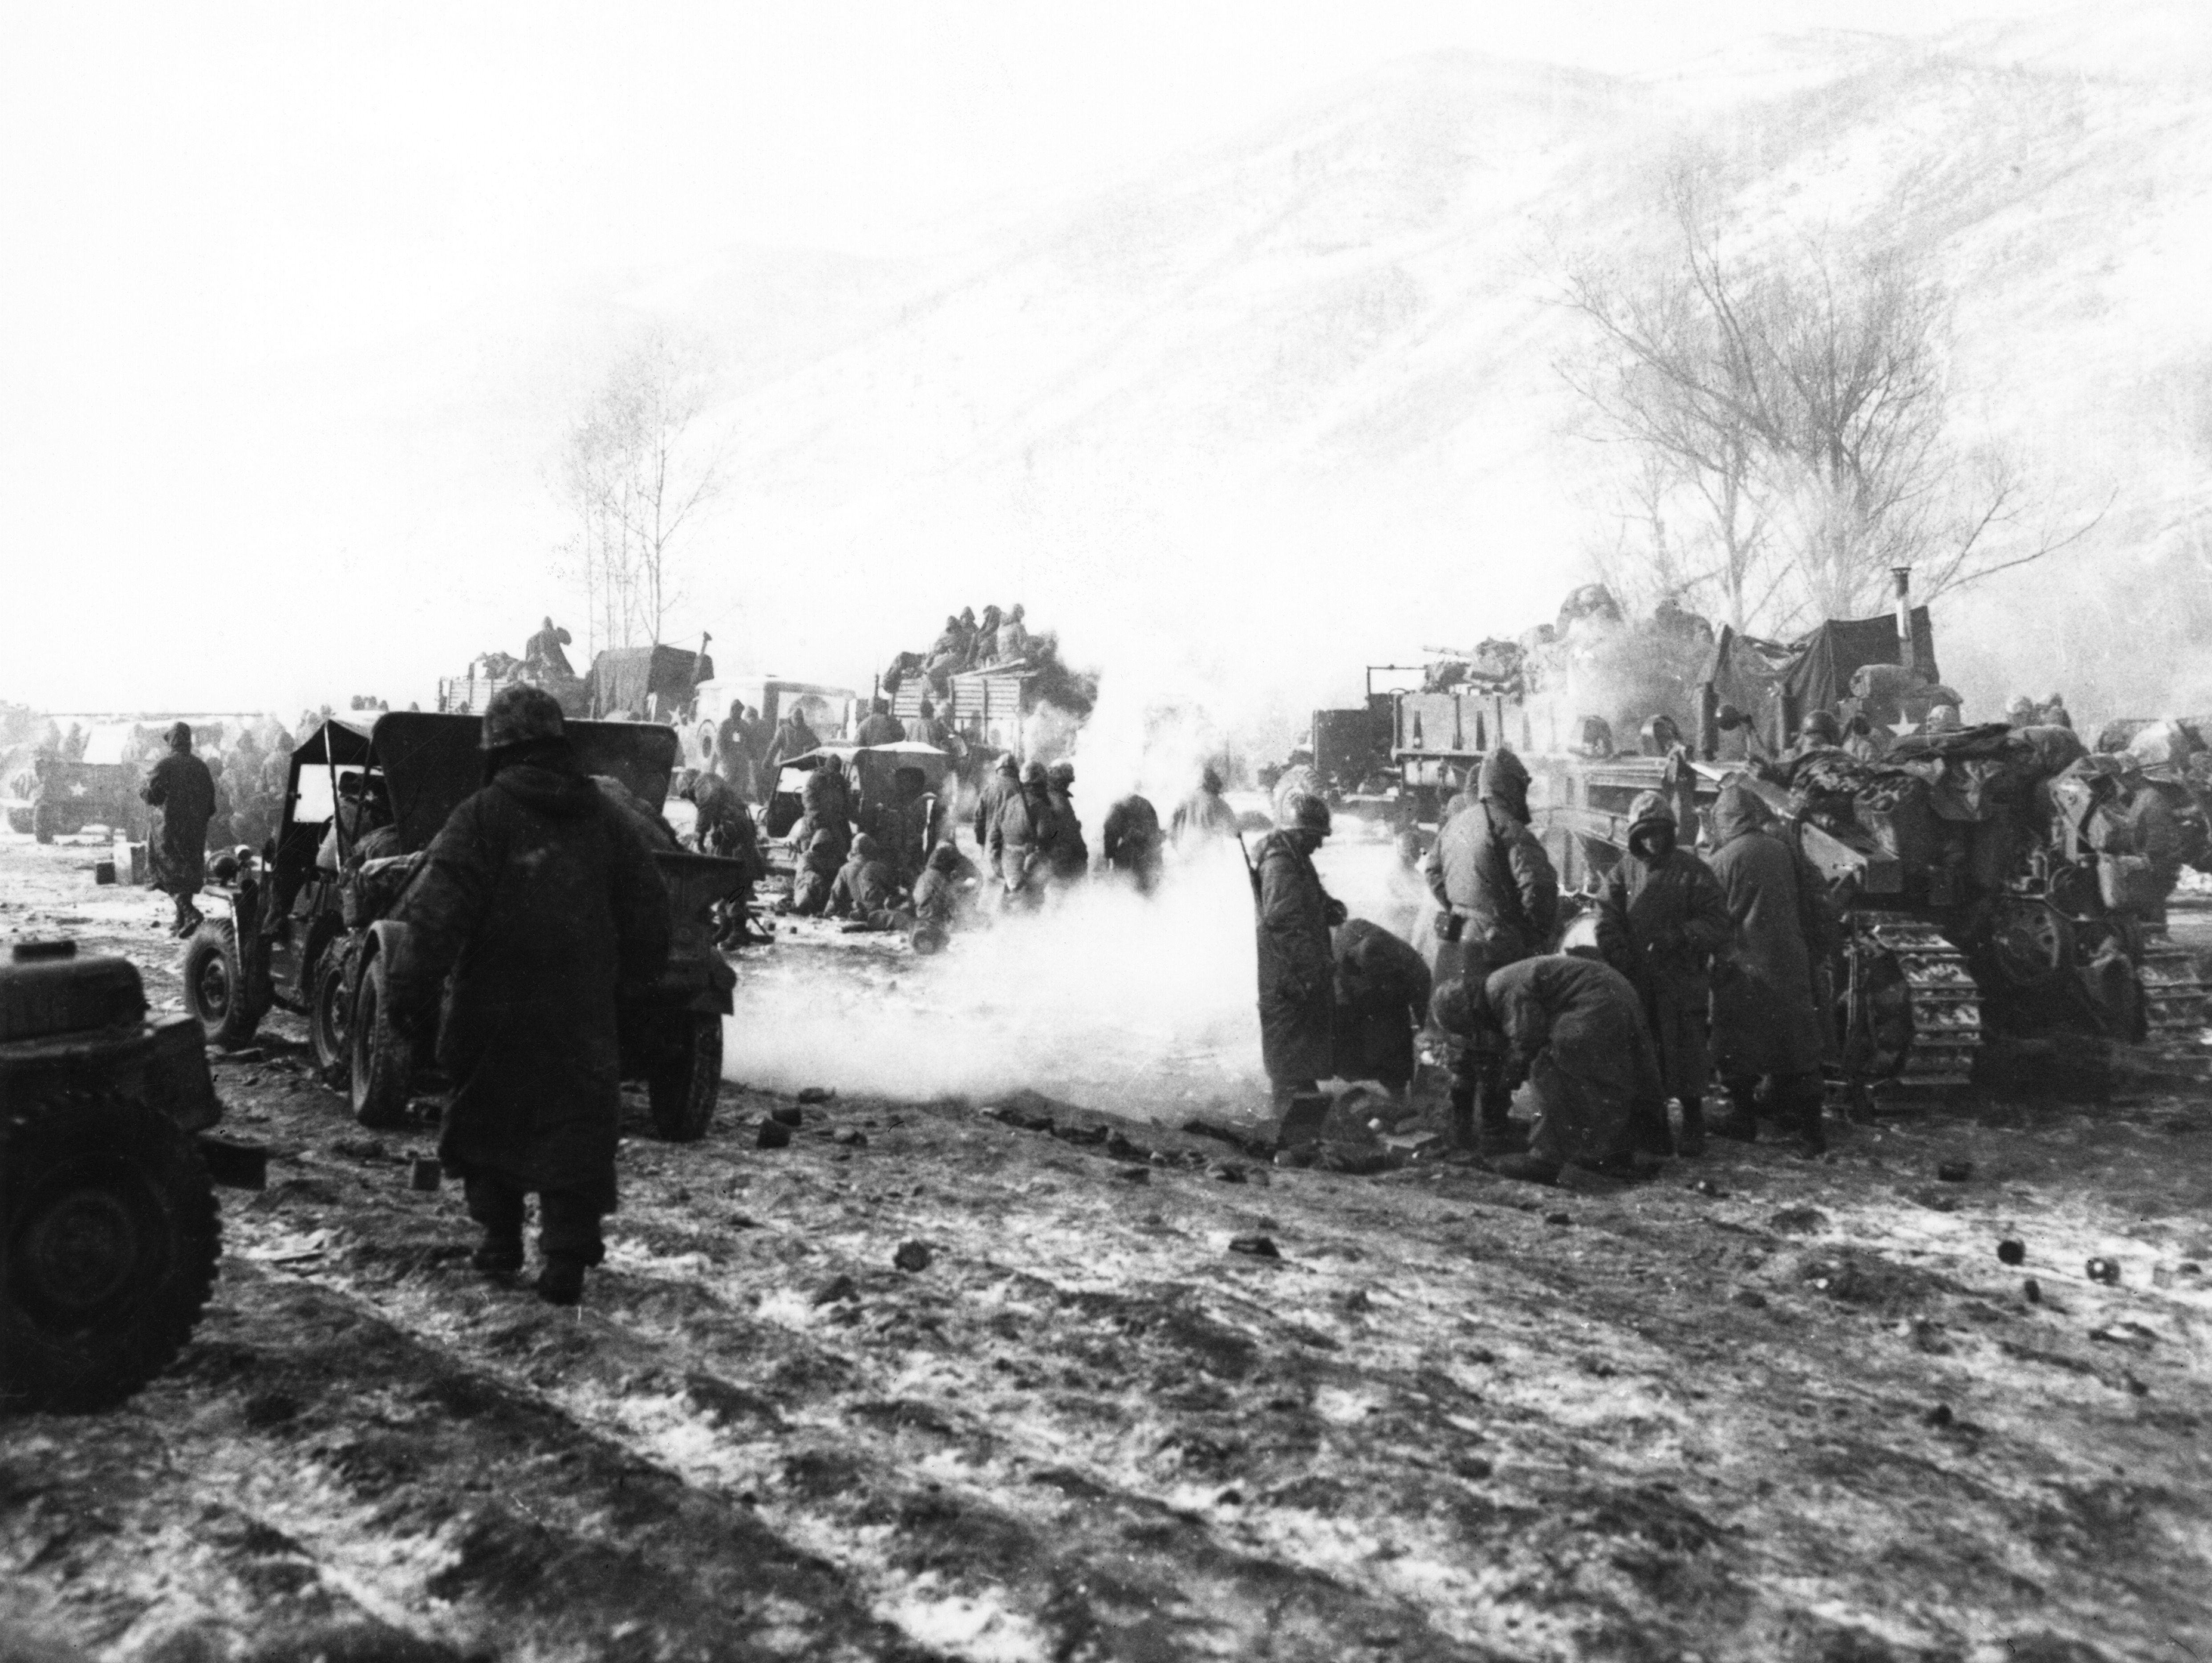 US Marines assemble their vehicles and equipment after a rearguard action against North Korean forces during the Korean War, 19th December 1950.